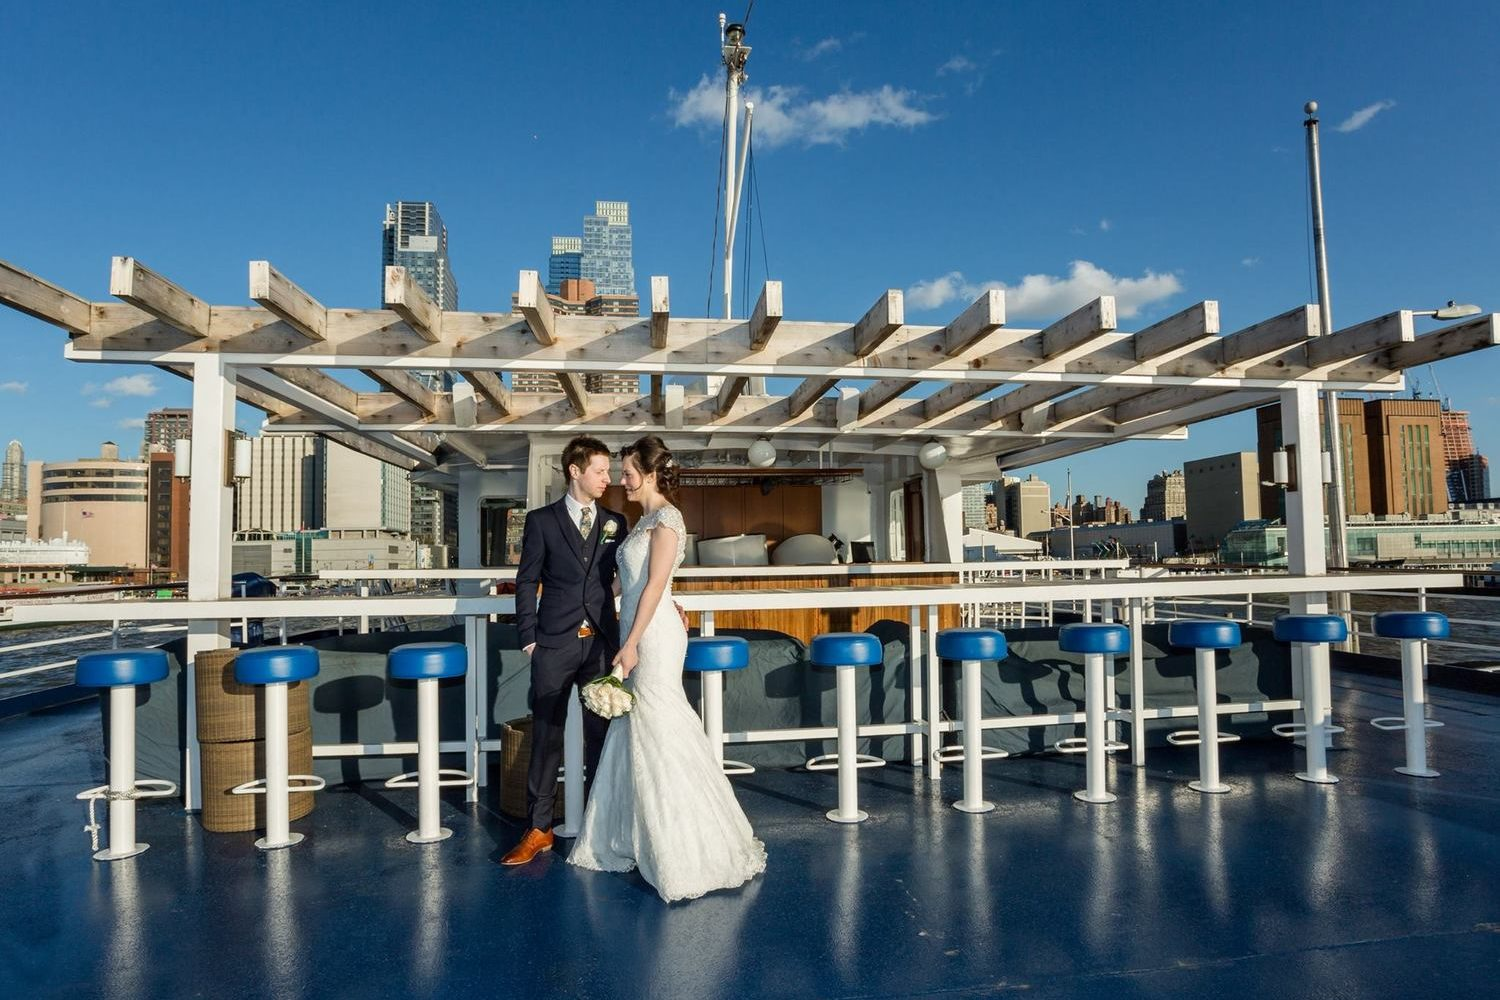 World Yacht Cruises boat on the rooftop with a wedding couple.